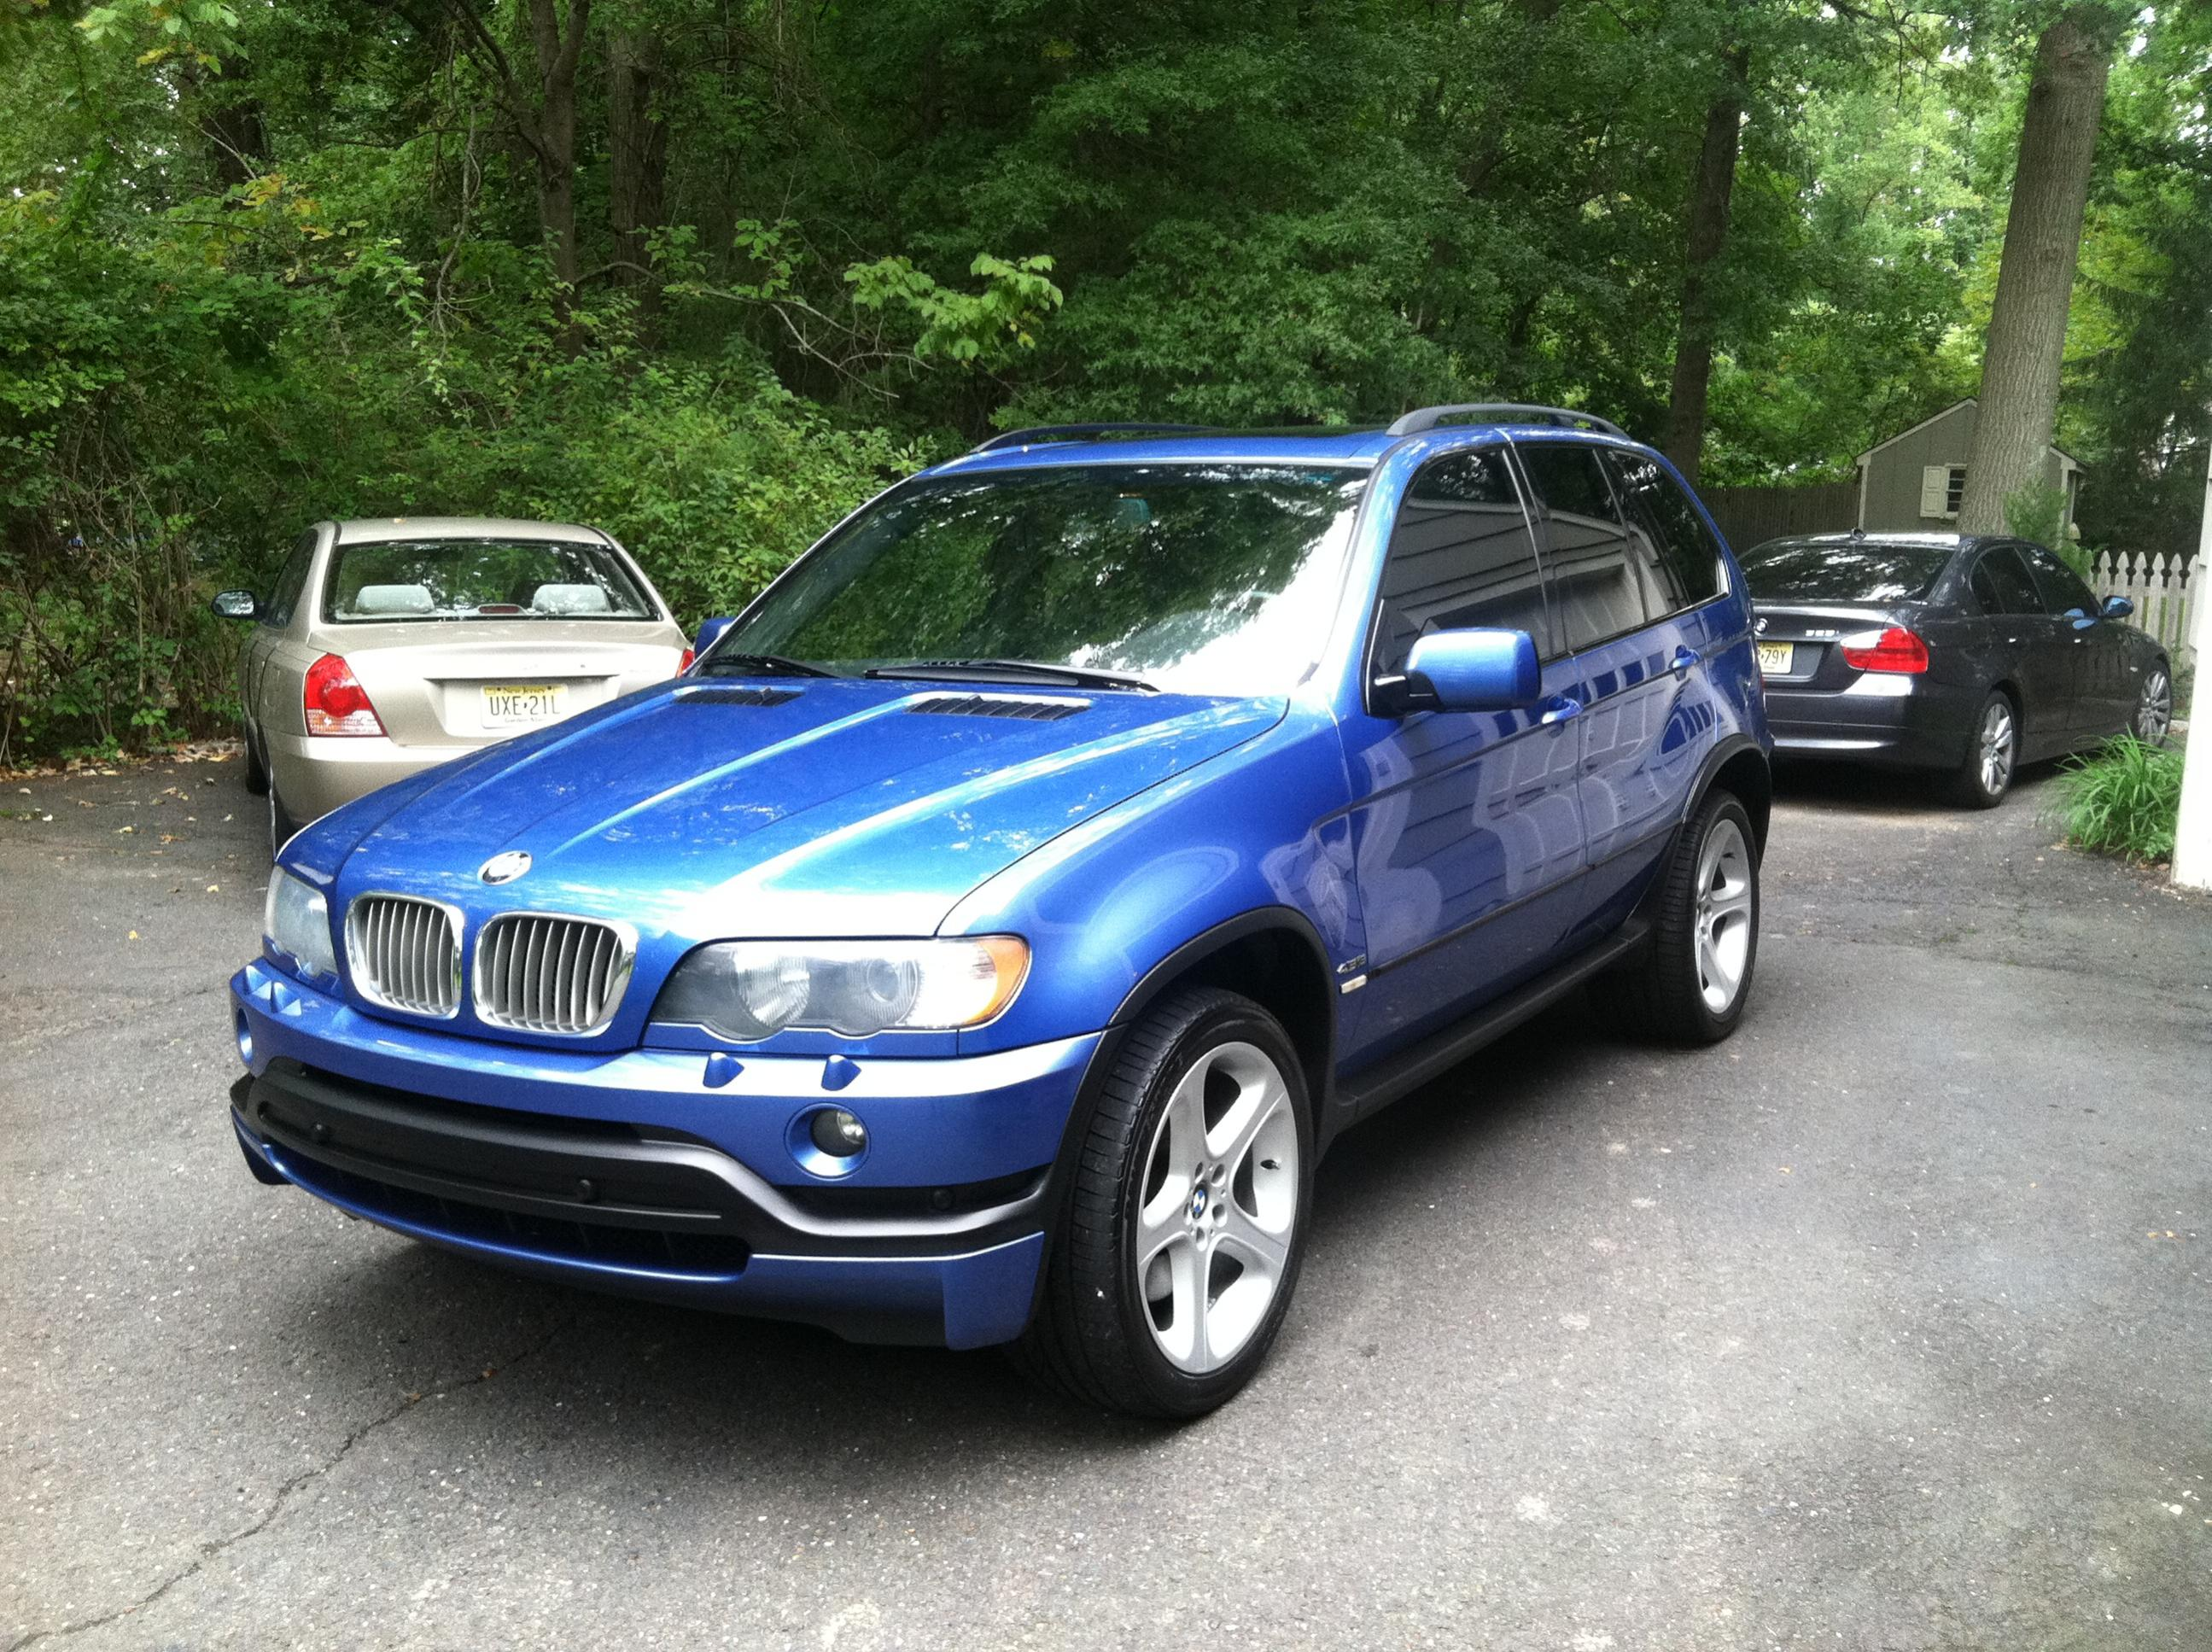 Pic further X likewise D My Is Kitted E N also Pic together with Pic. on 2003 bmw x5 exhaust